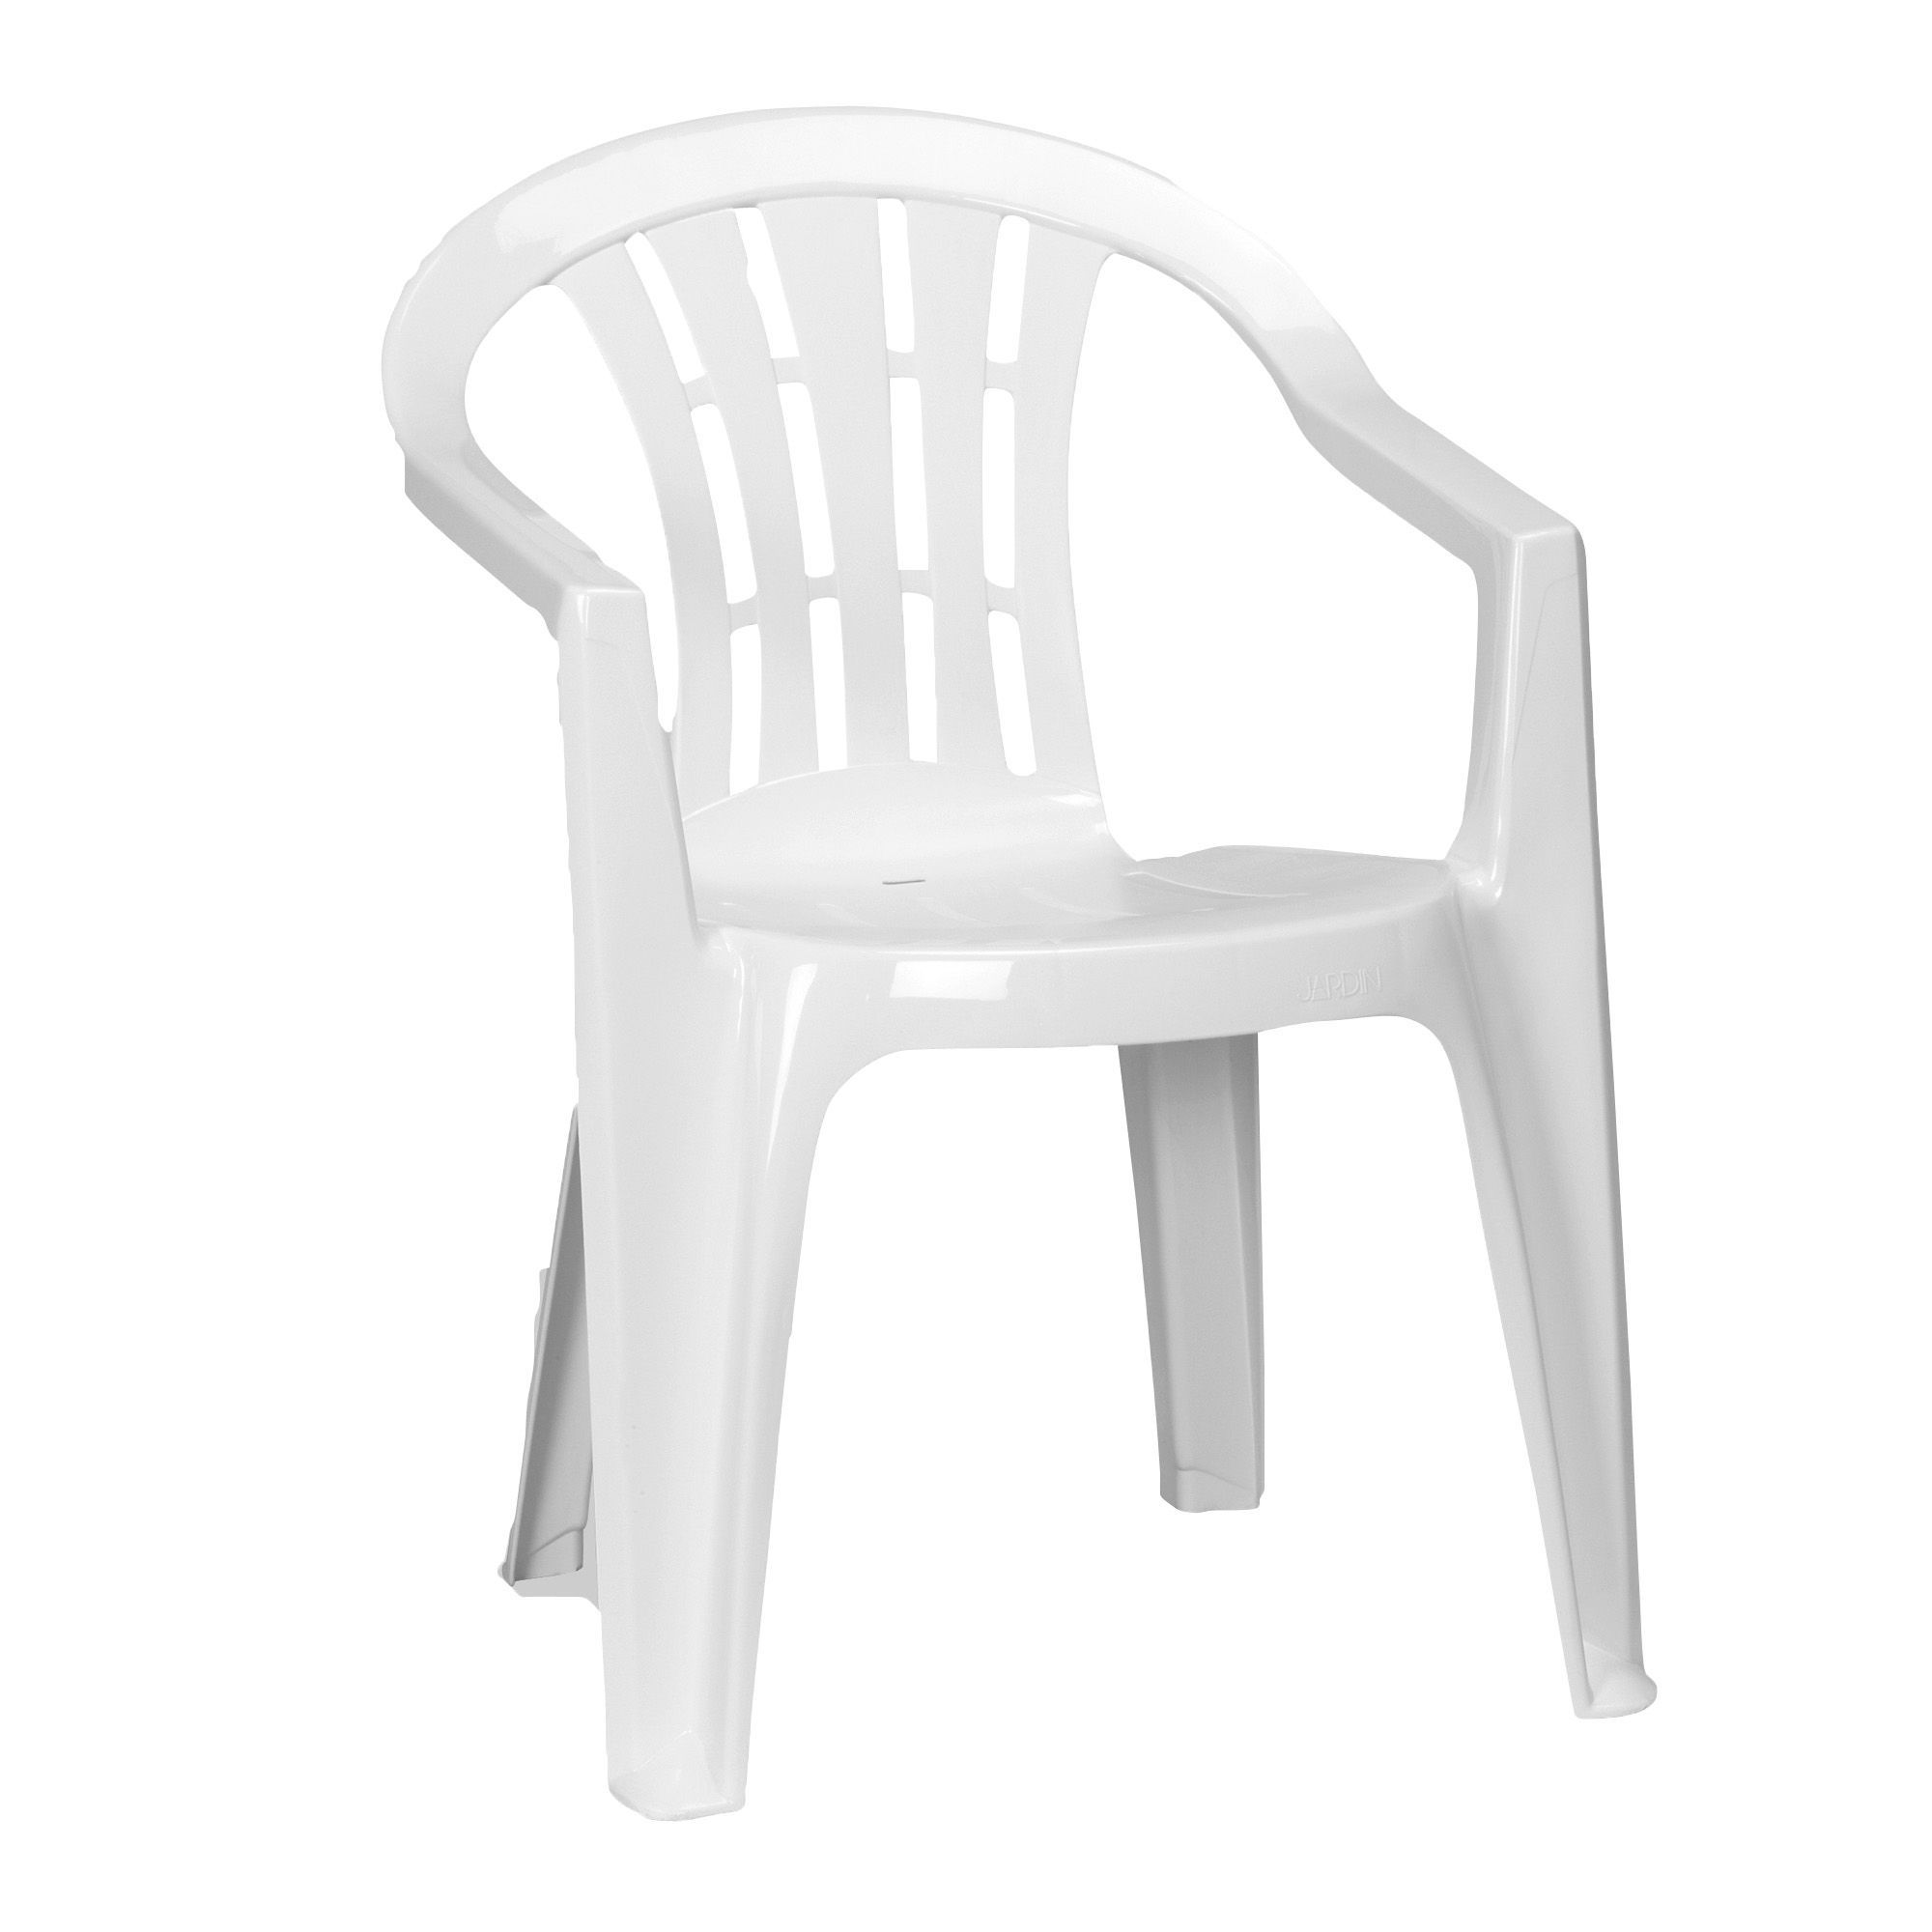 white lawn chairs plastic dicks sporting goods cuba chair departments diy at b andq